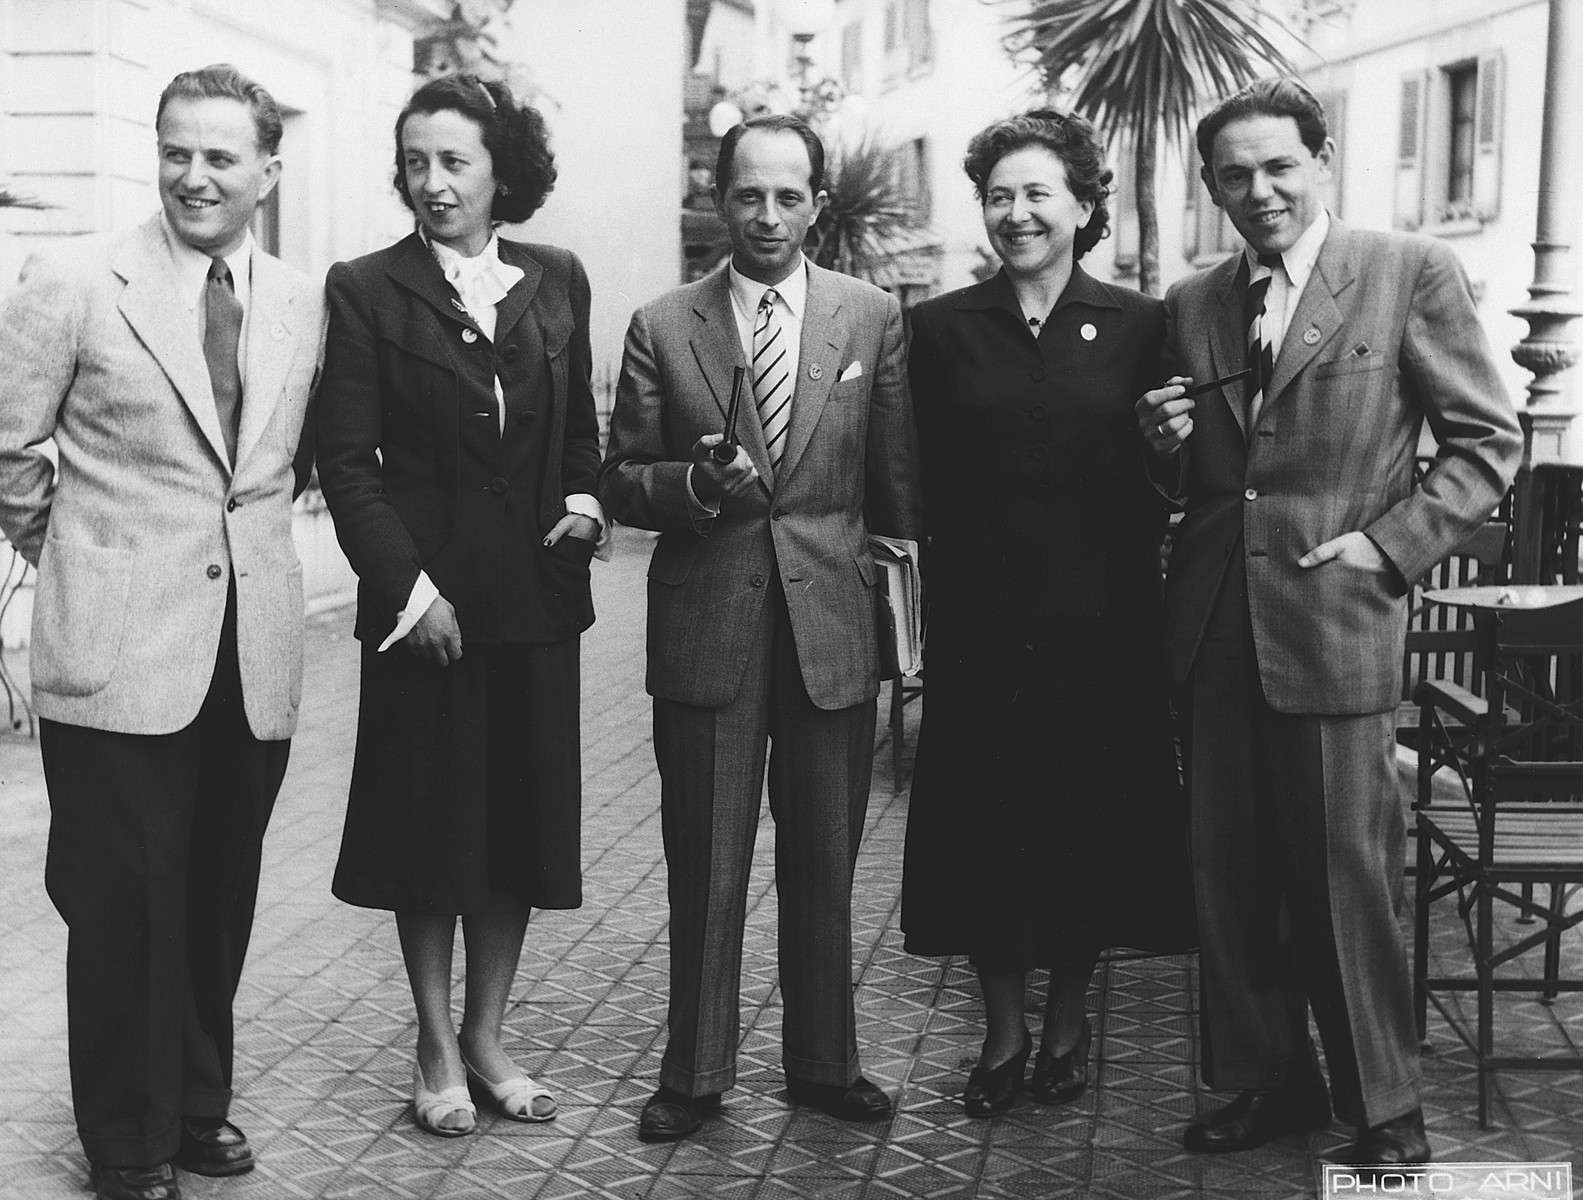 Jewish leaders attend a meeting of the World Jewish Congress in Montreux, Switzerland.   Among those pictured is Gerhart Riegner (in the middle).